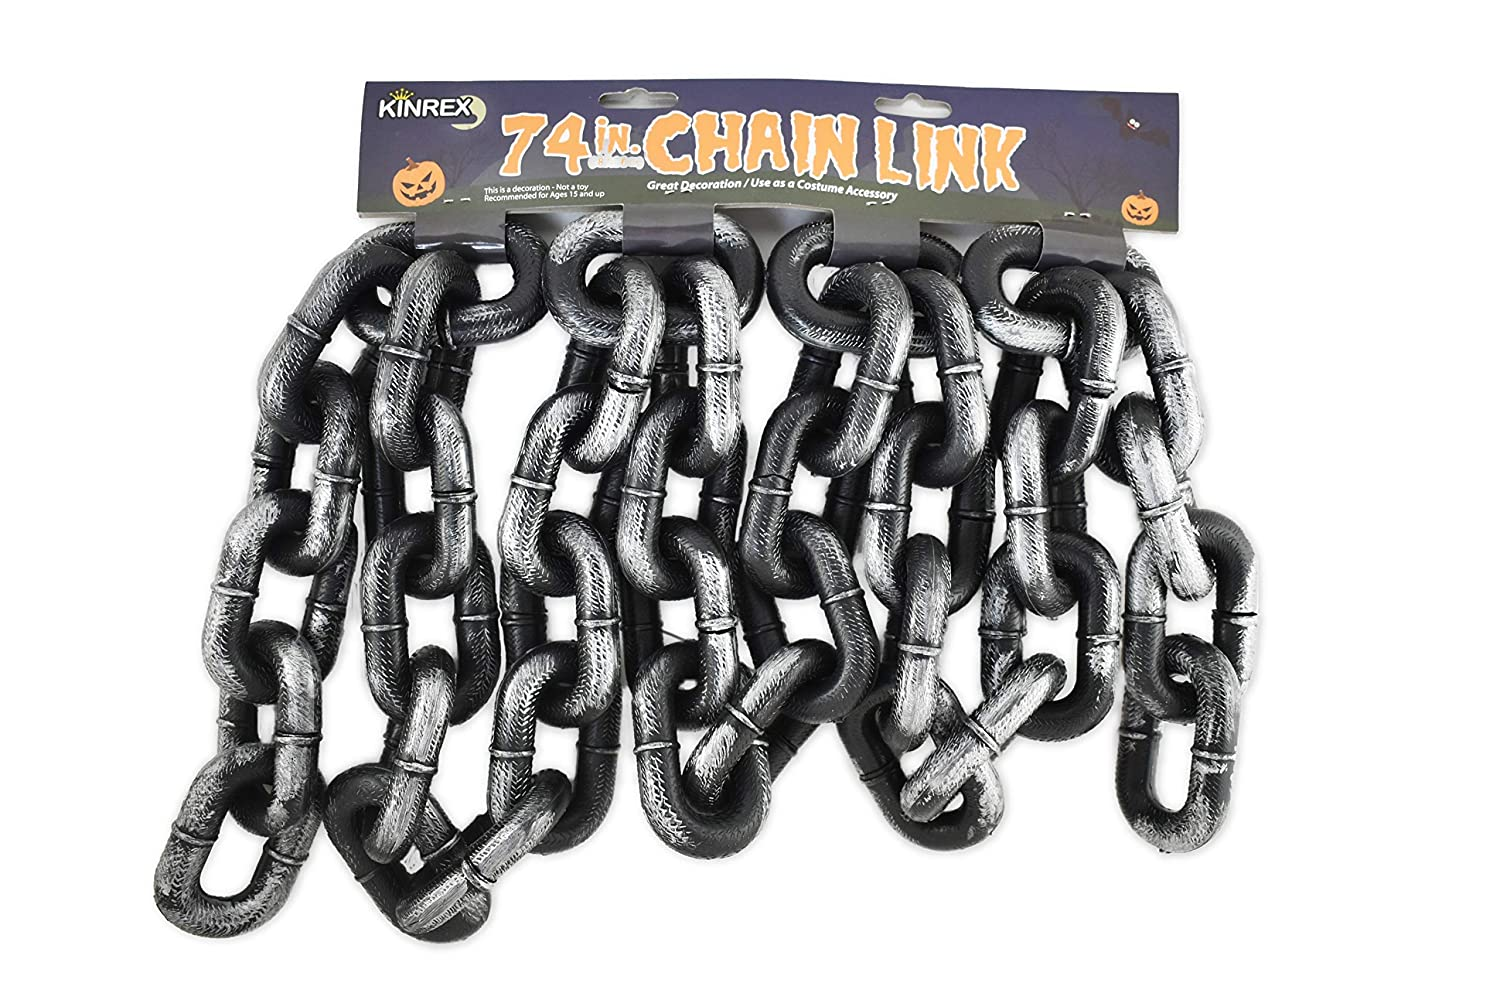 KINREX Halloween Chain Link - Halloween Costume Accessory Decoration - Grey and Black - Made of Plastic - Measures 74 Inches